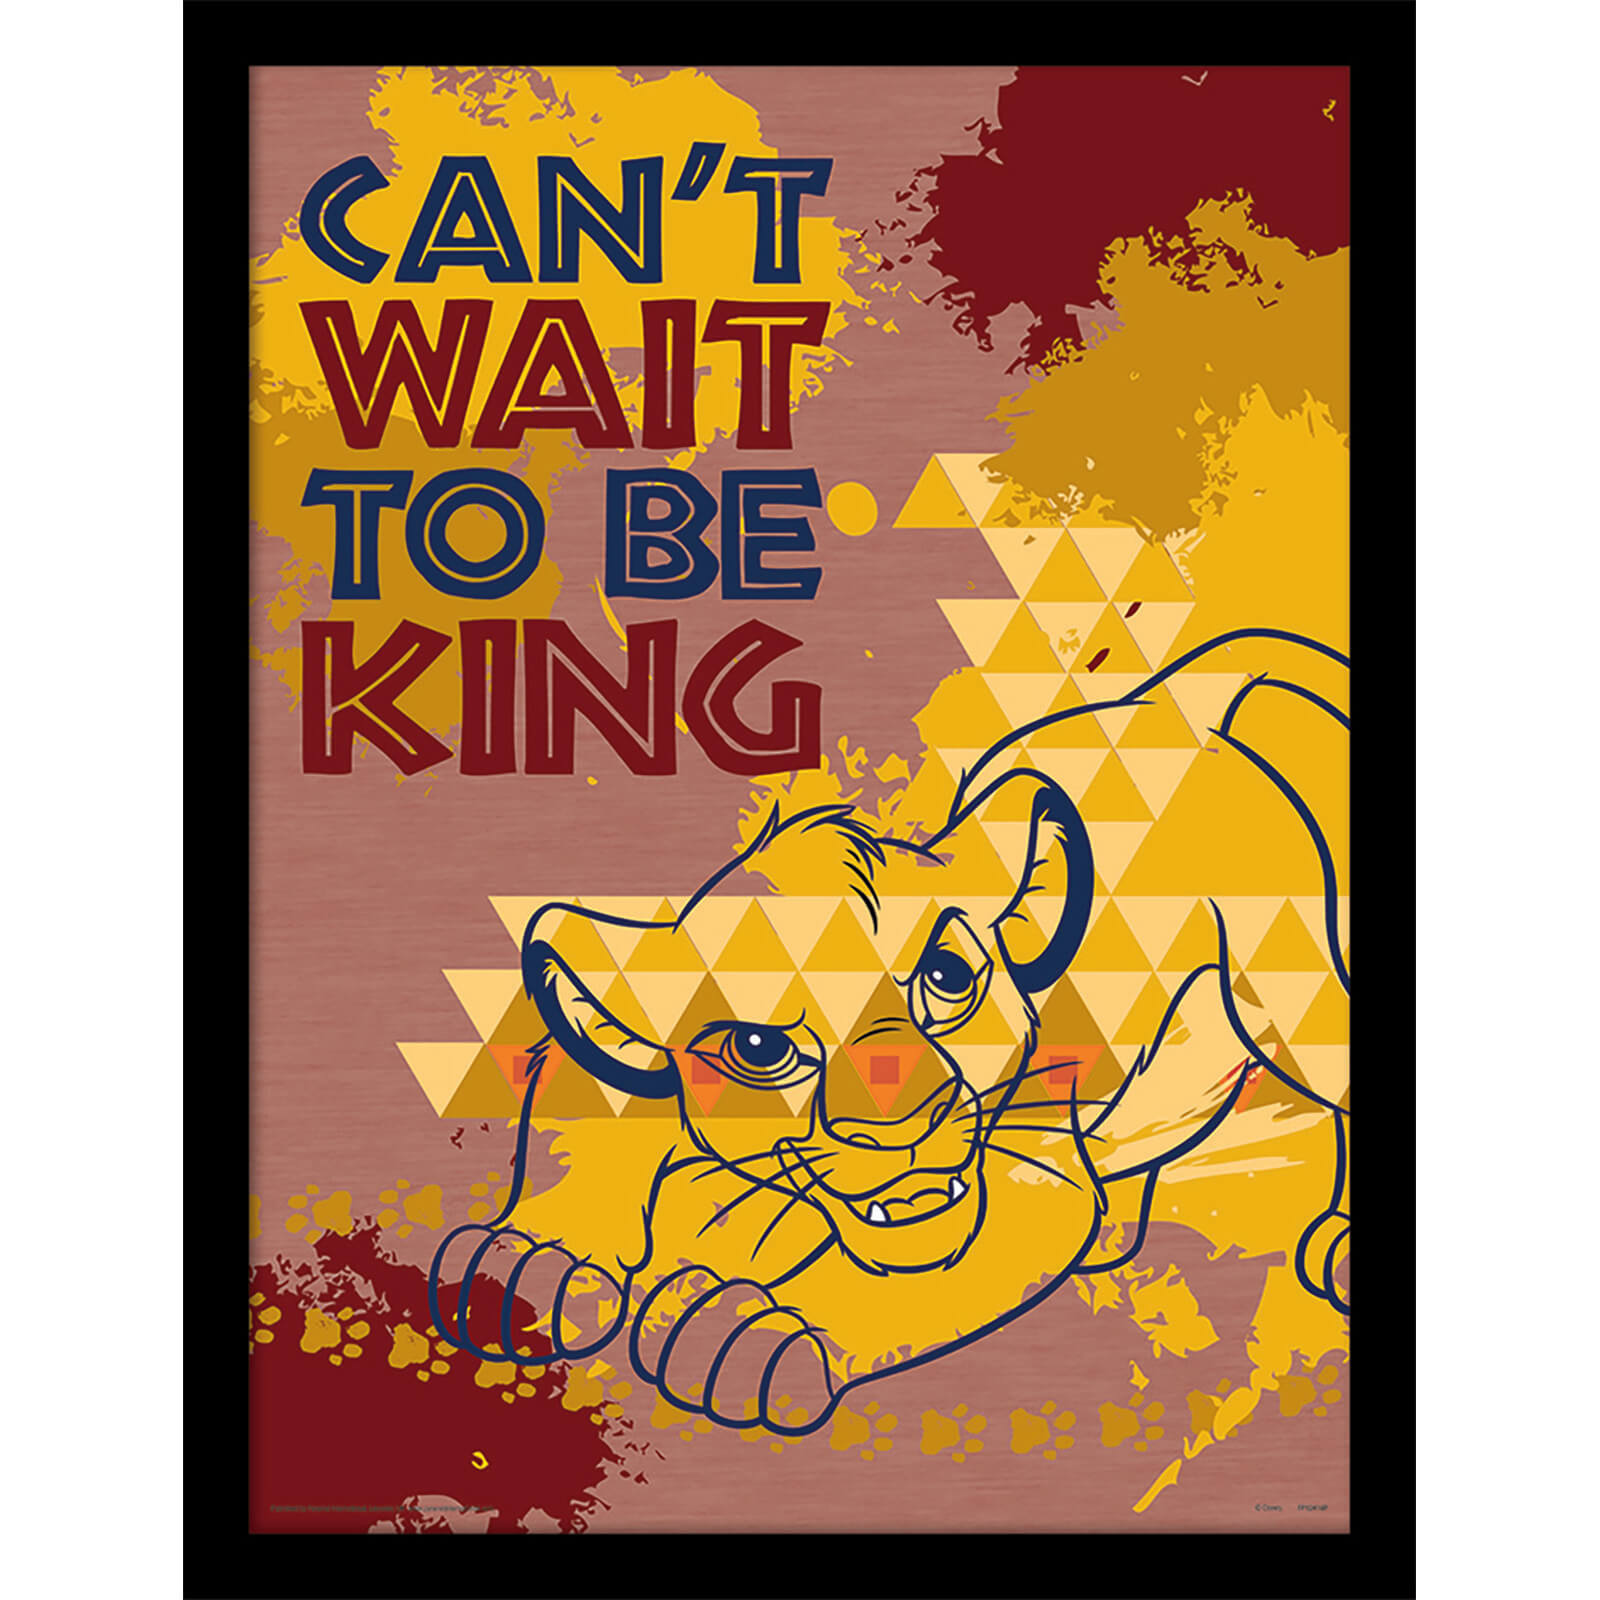 Image of The Lion King (Can't Wait to be King) 30 x 40cm Print